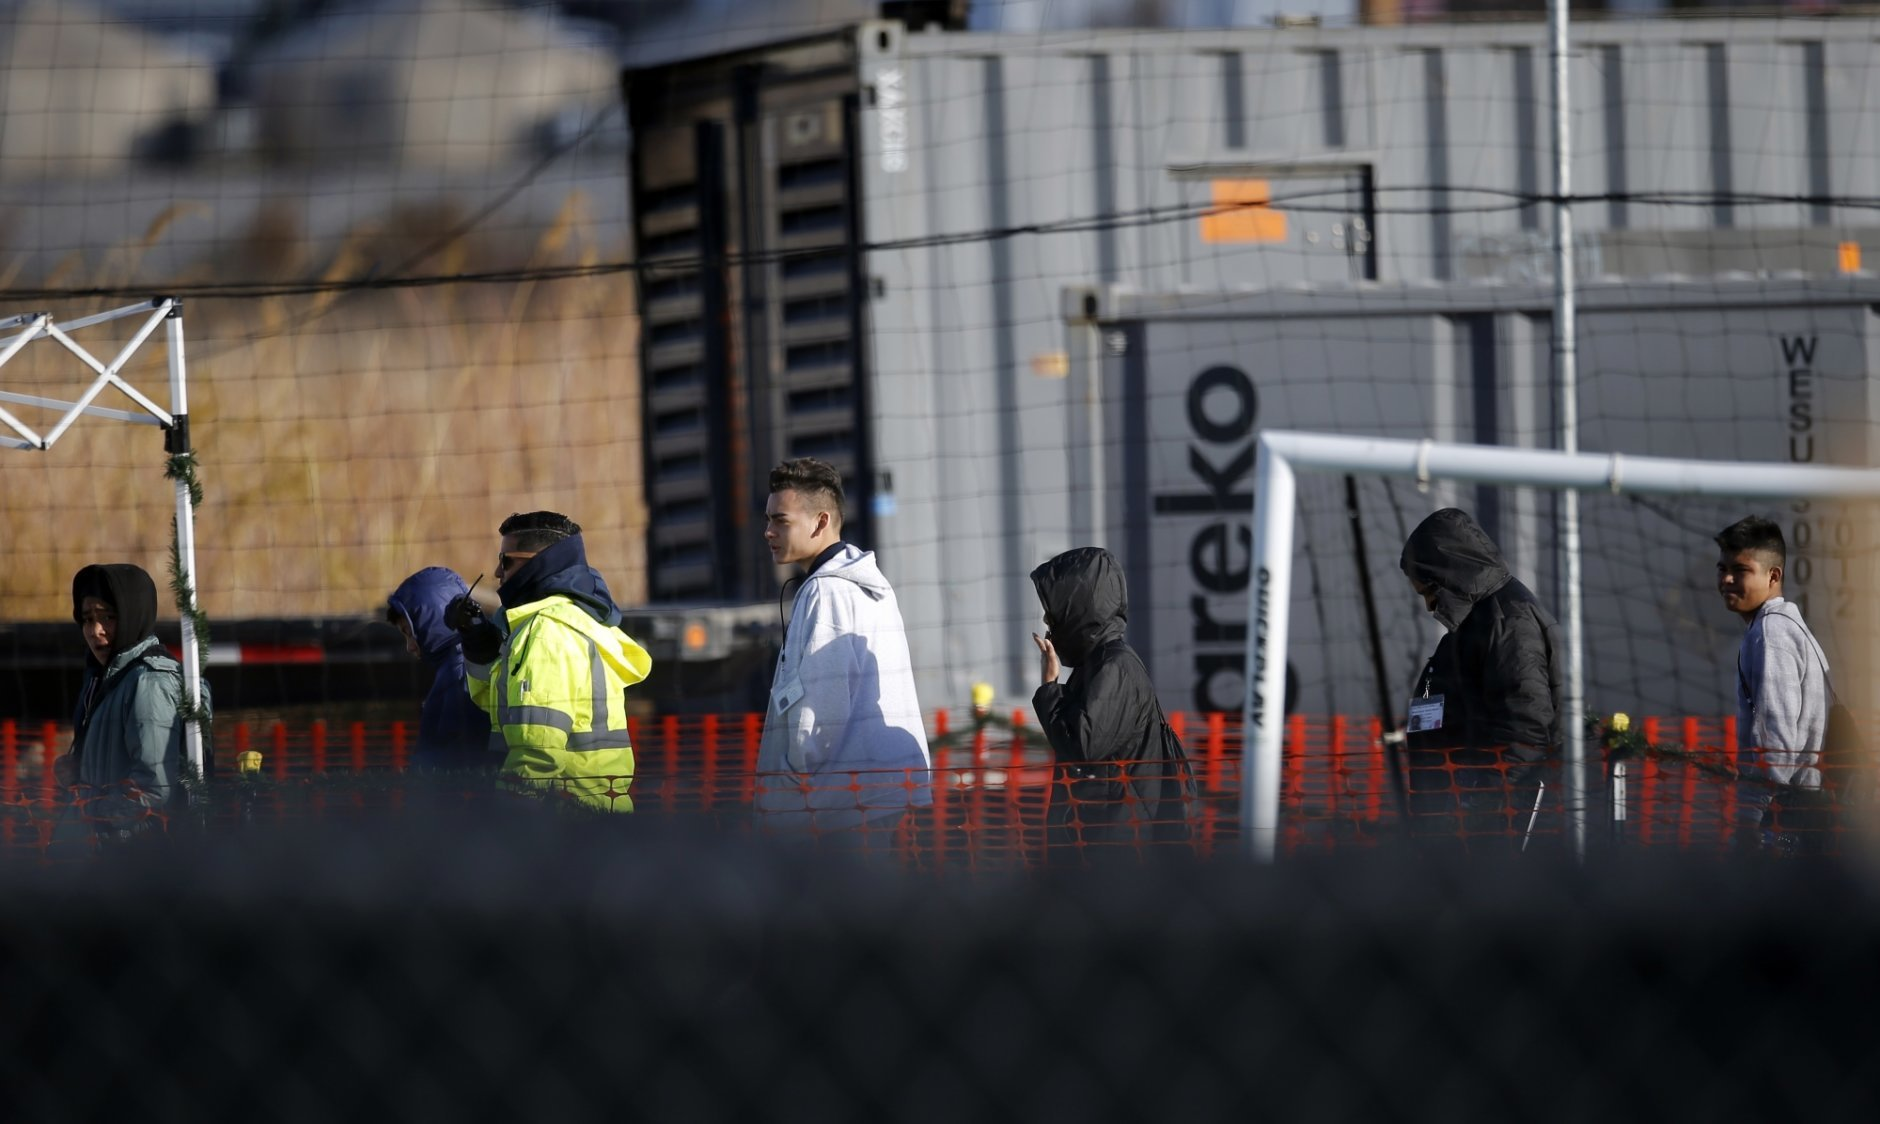 FILE - In this Thursday, Dec. 13, 2018 file photo, migrant teens walk inside the Tornillo detention camp in Tornillo, Texas. A zero-tolerance order from President Donald Trump resulted in more than 2,500 migrant children being separated from their families. (AP Photo/Andres Leighton)